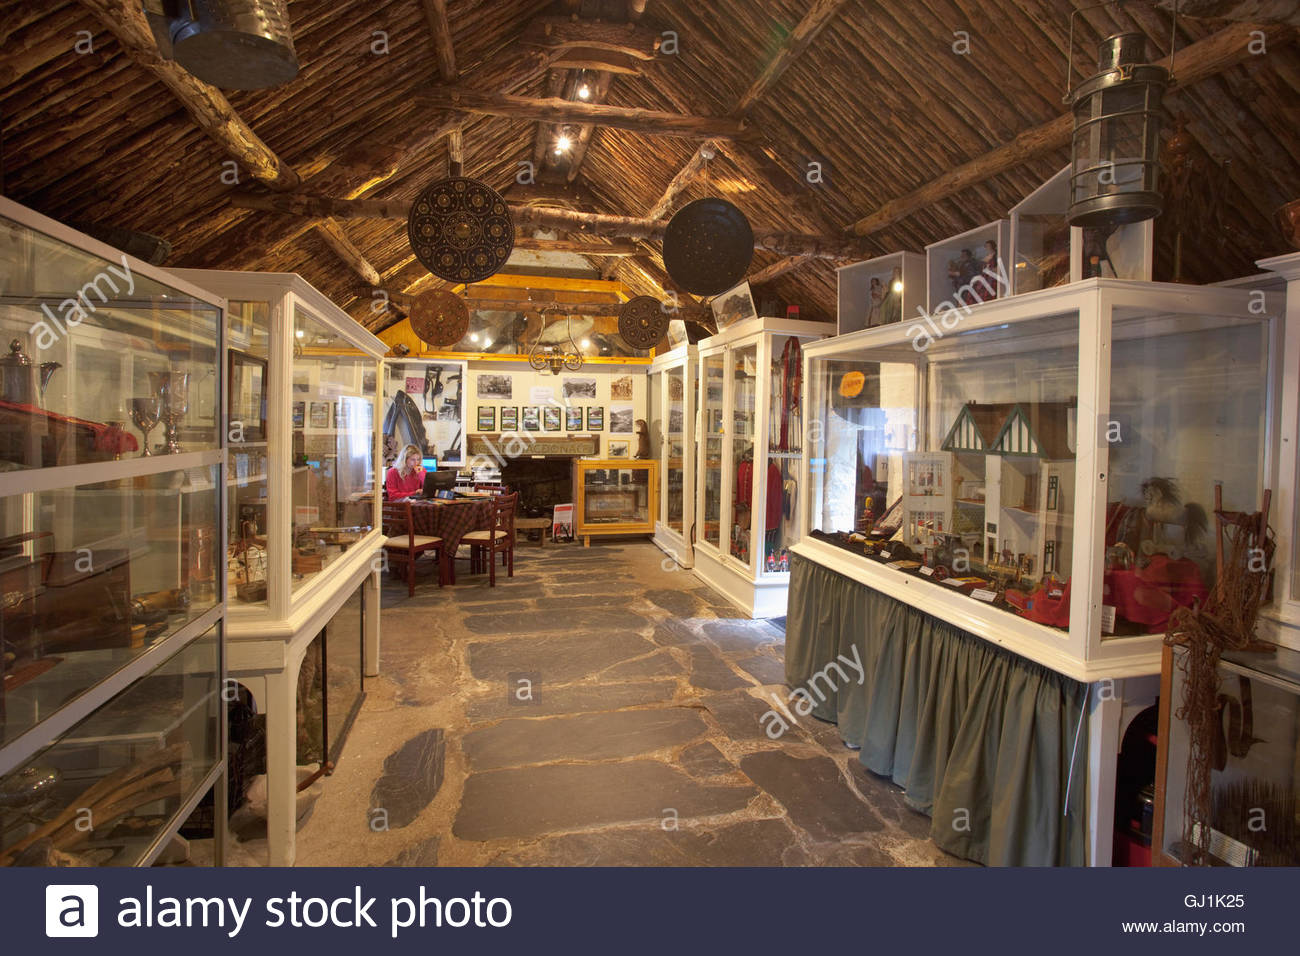 The Glencoe and North Lorn Folk Museum in an early 18th Century restored thatched cottage - Stock Image